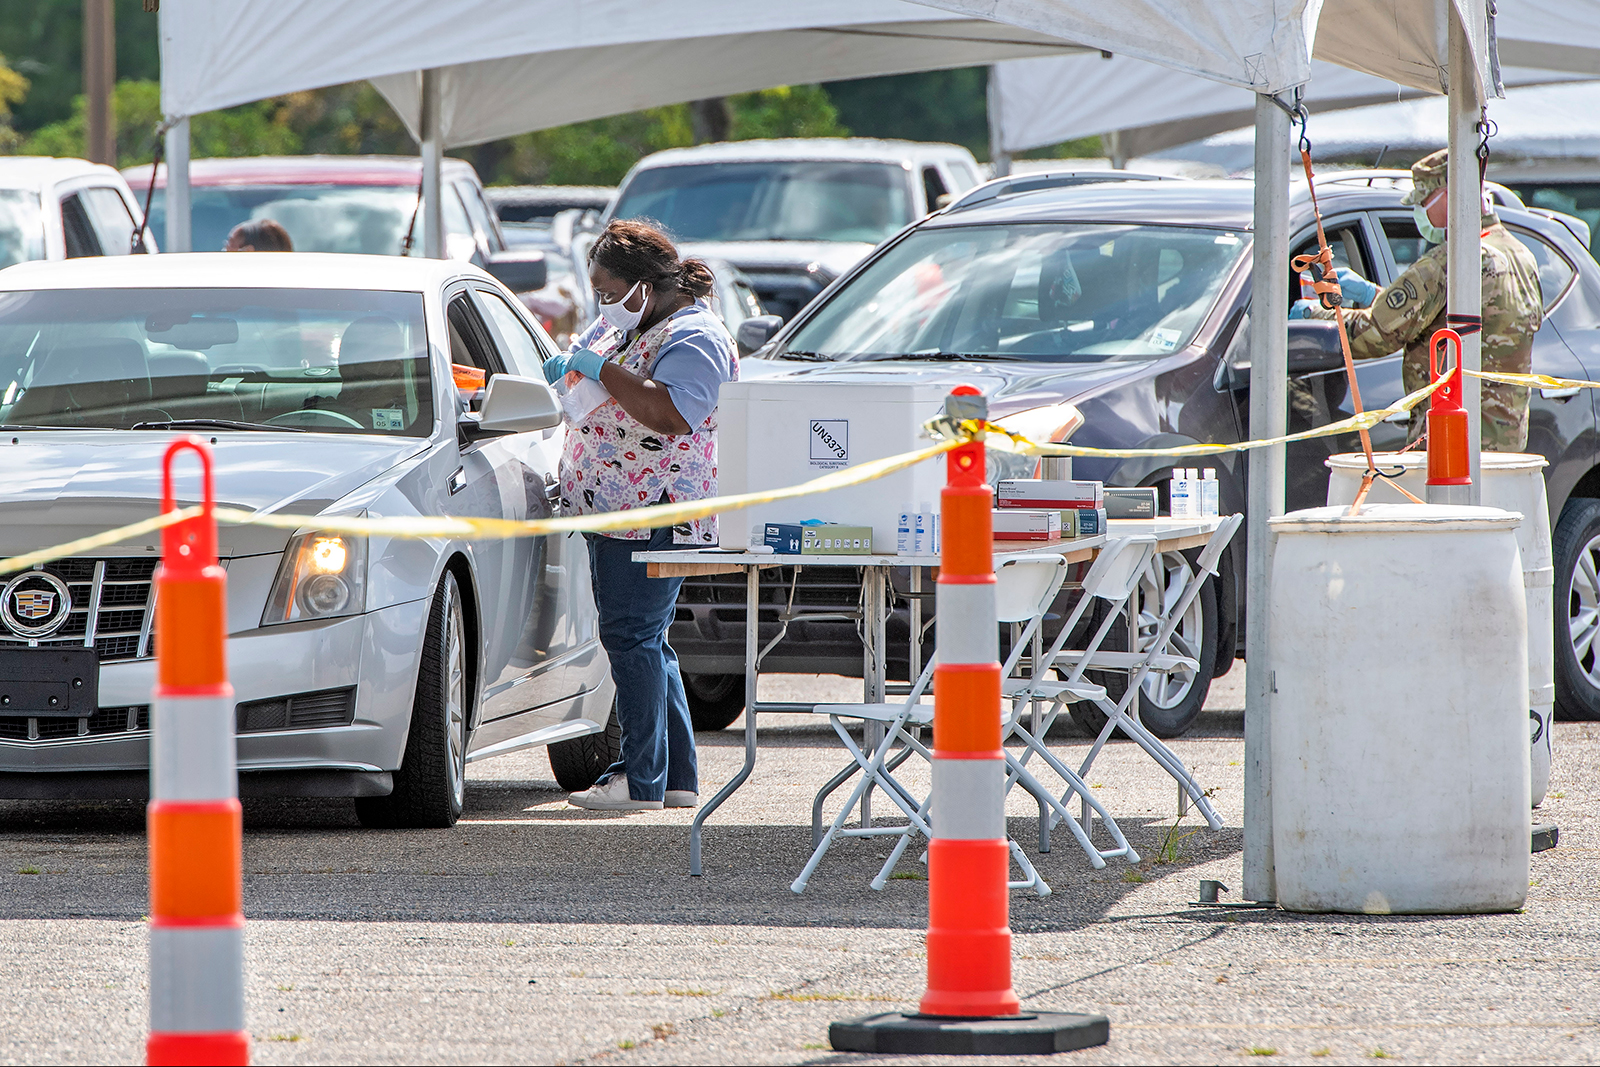 People line up at the Covid-19 testing site at Cortana Mall in Baton Rouge, Louisiana on July 7.